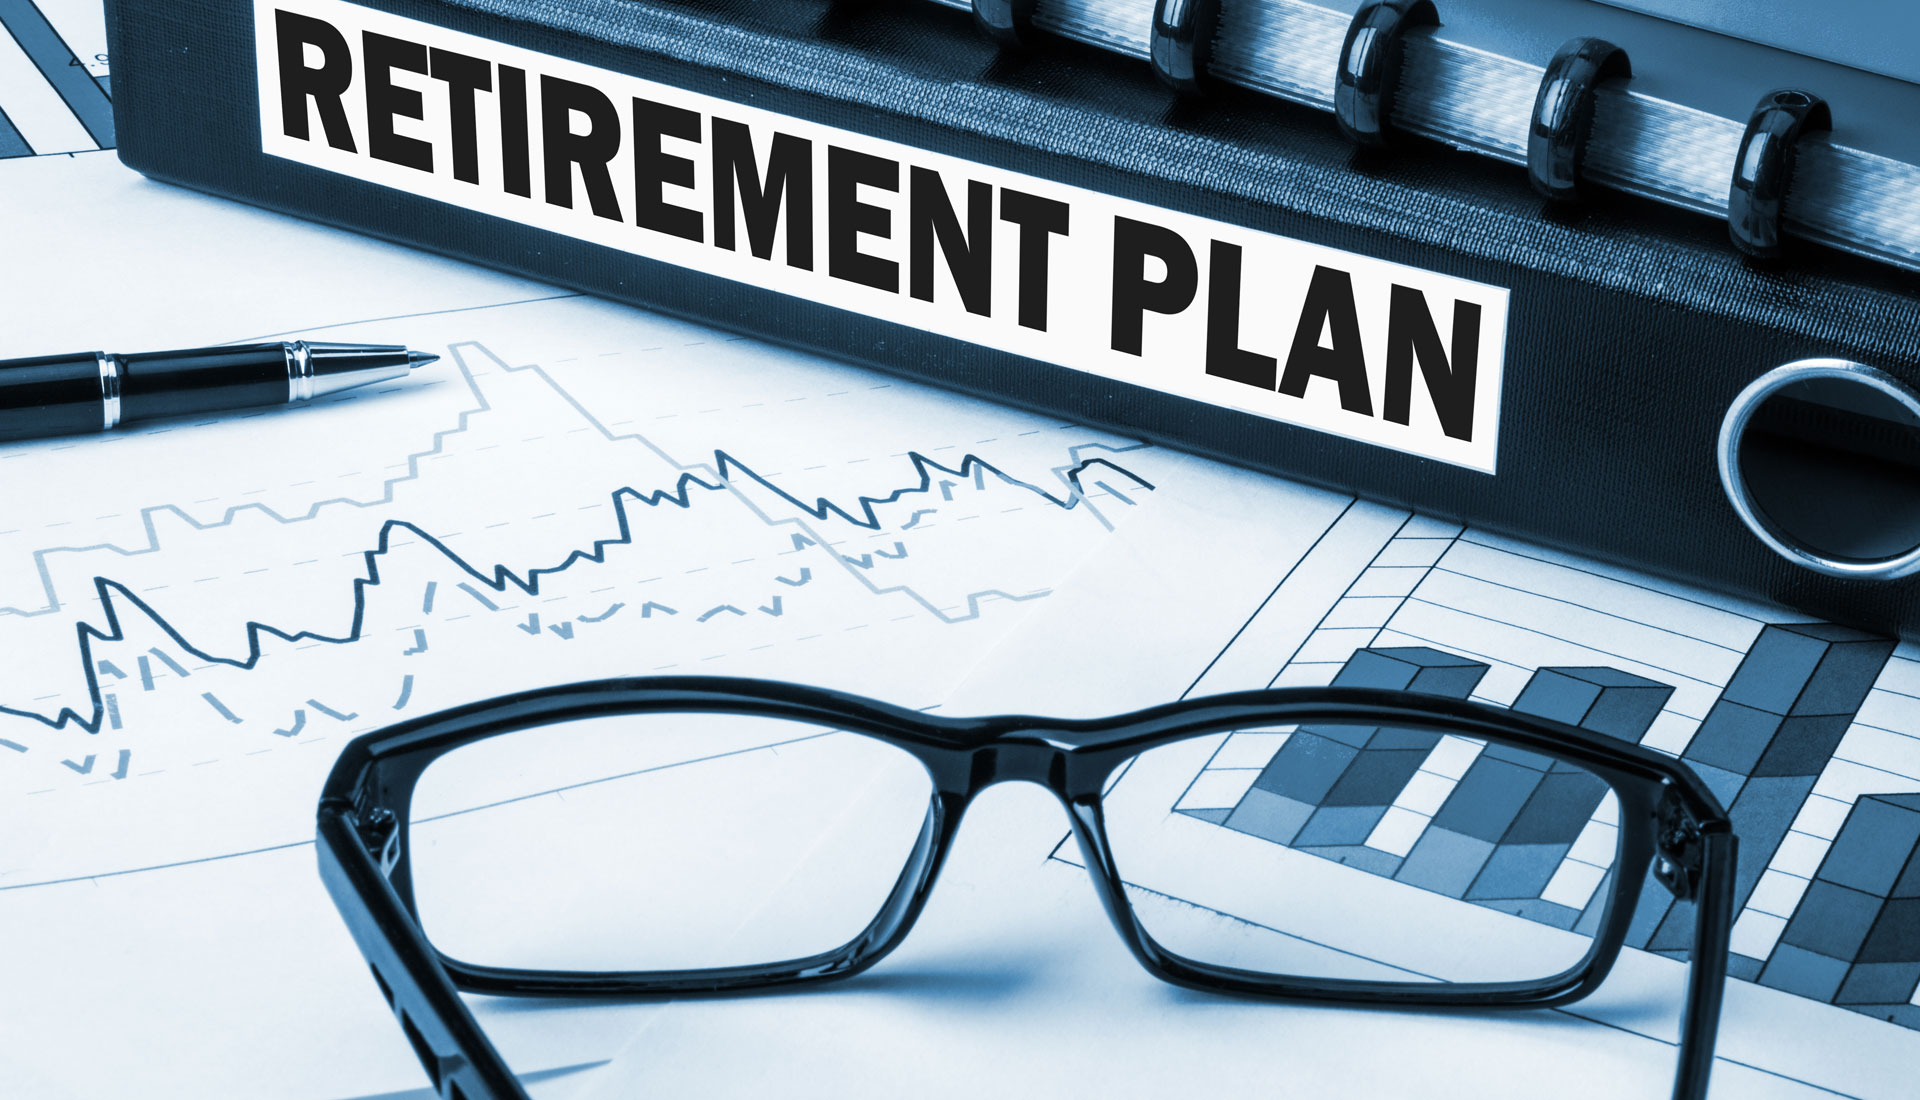 Ten Key Points Of Retirement Planning In The Mutual Fund Way